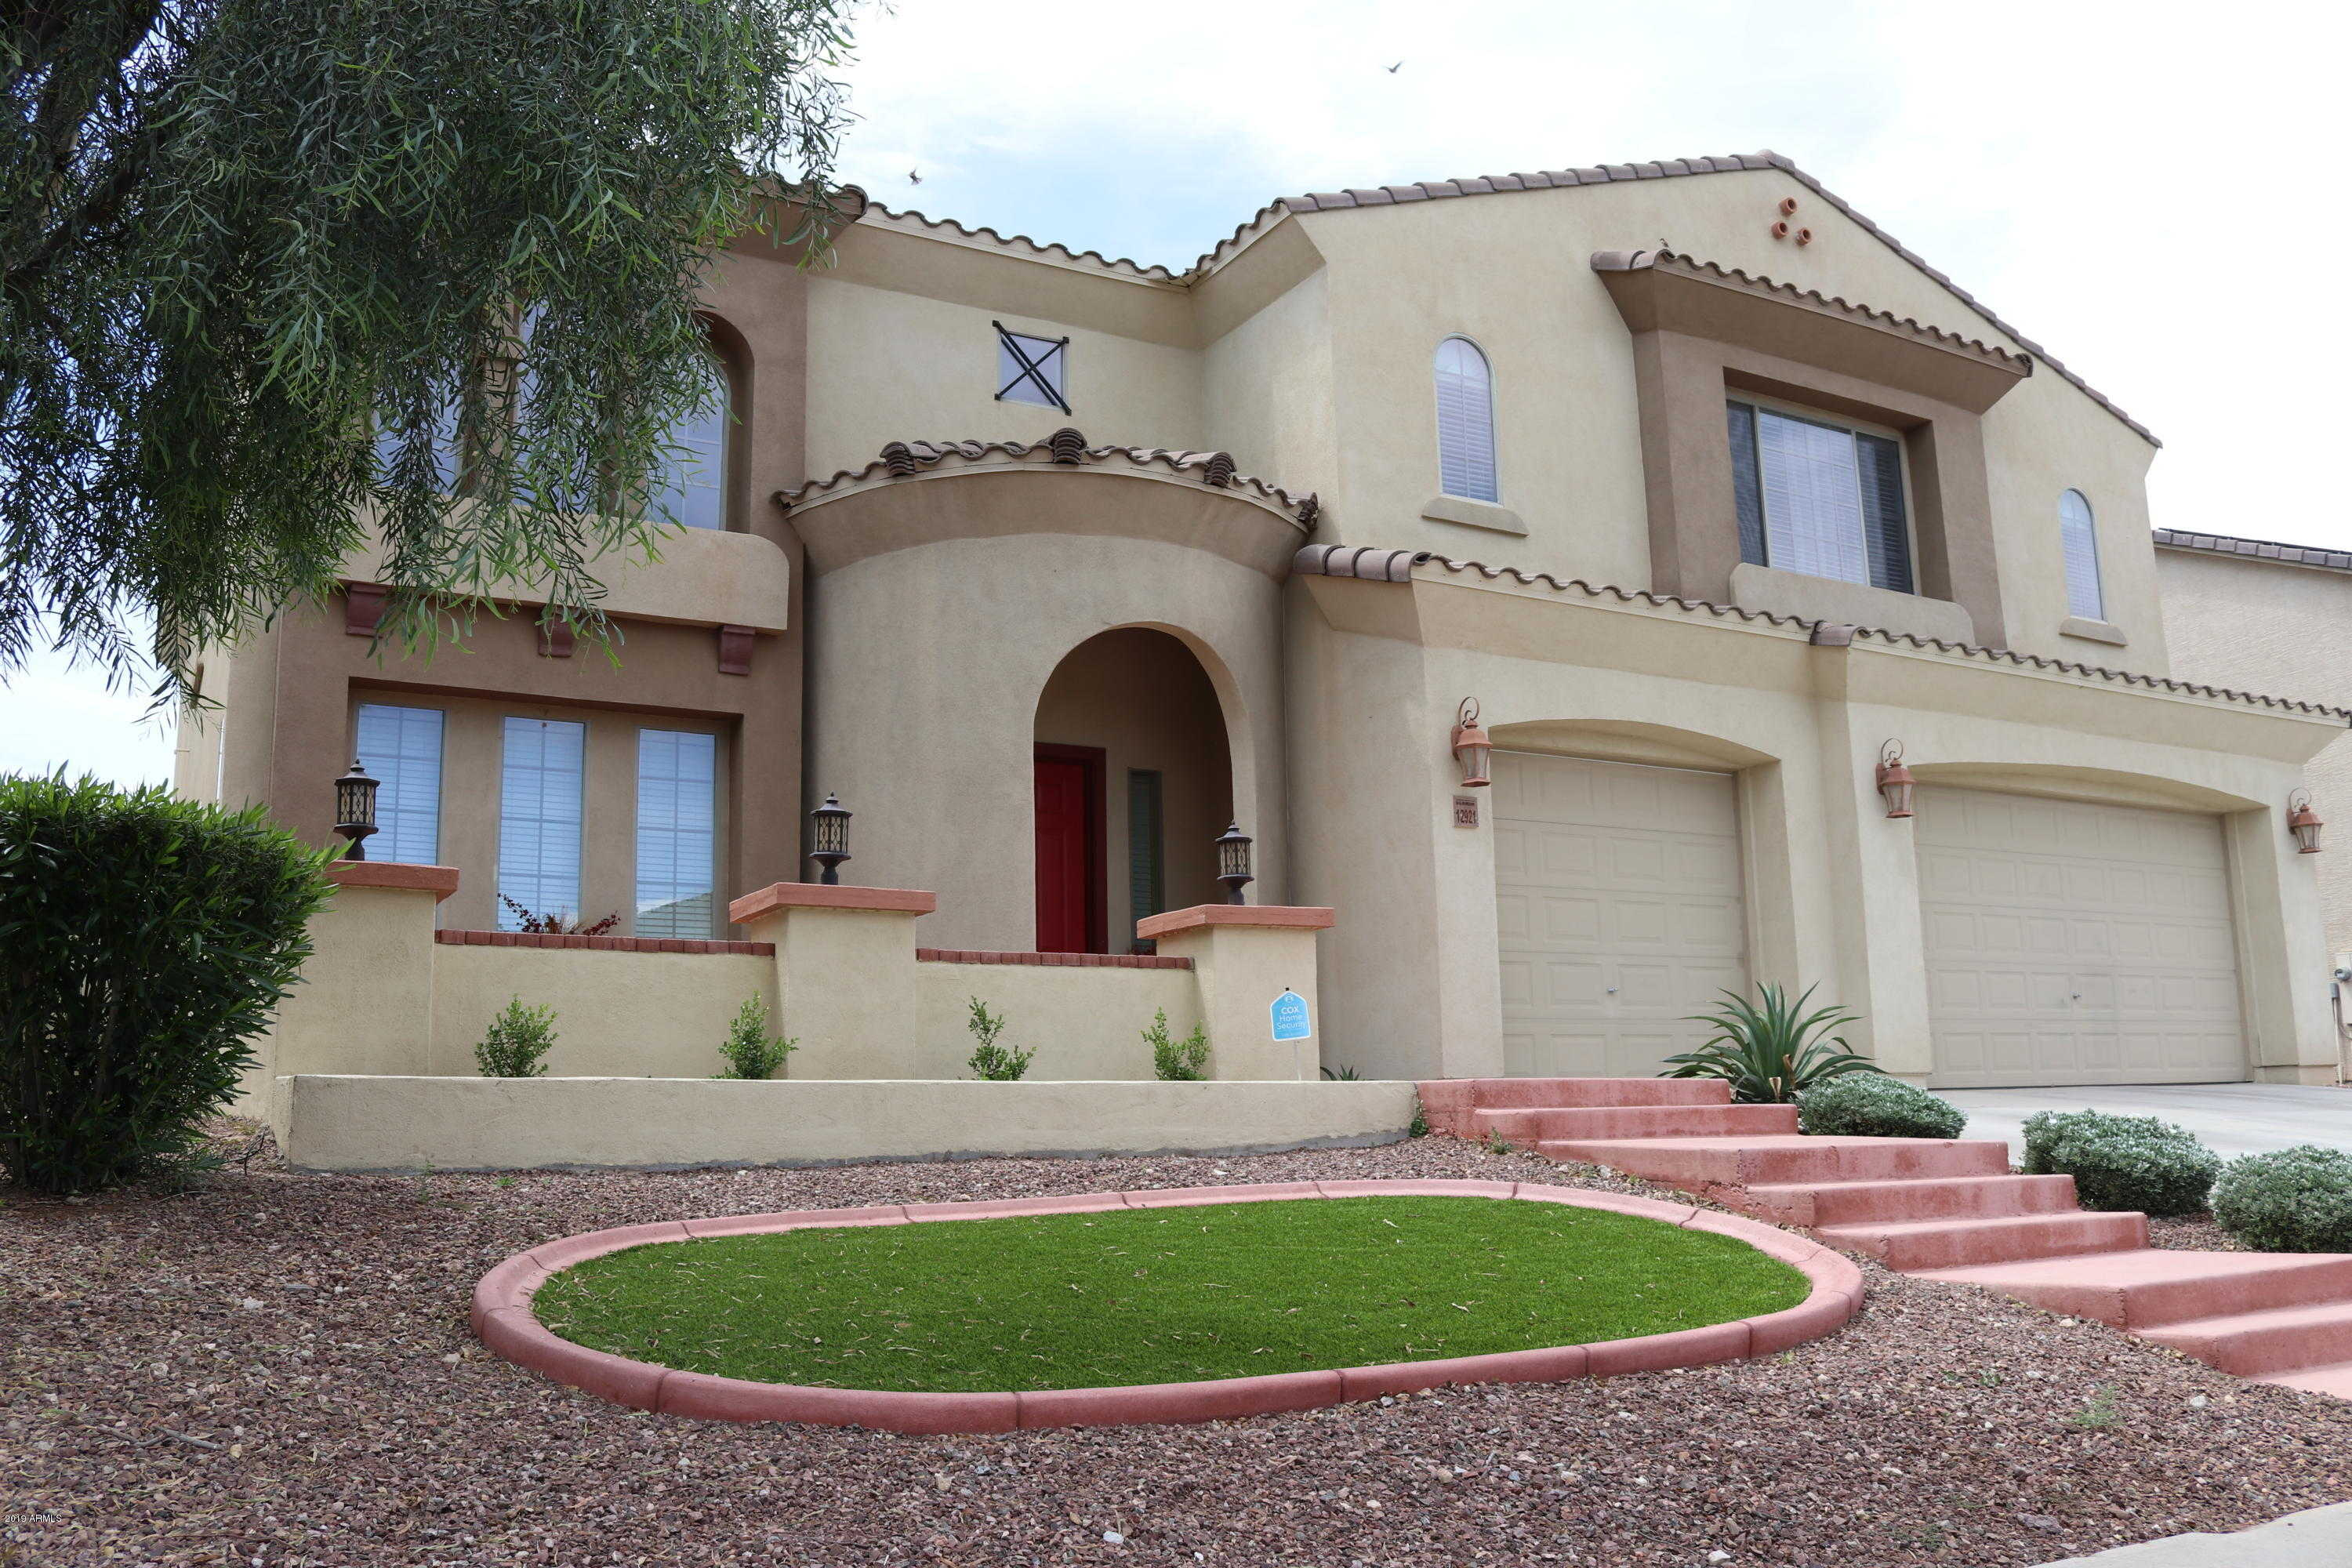 $405,000 - 5Br/3Ba - Home for Sale in Capistrano South, Glendale